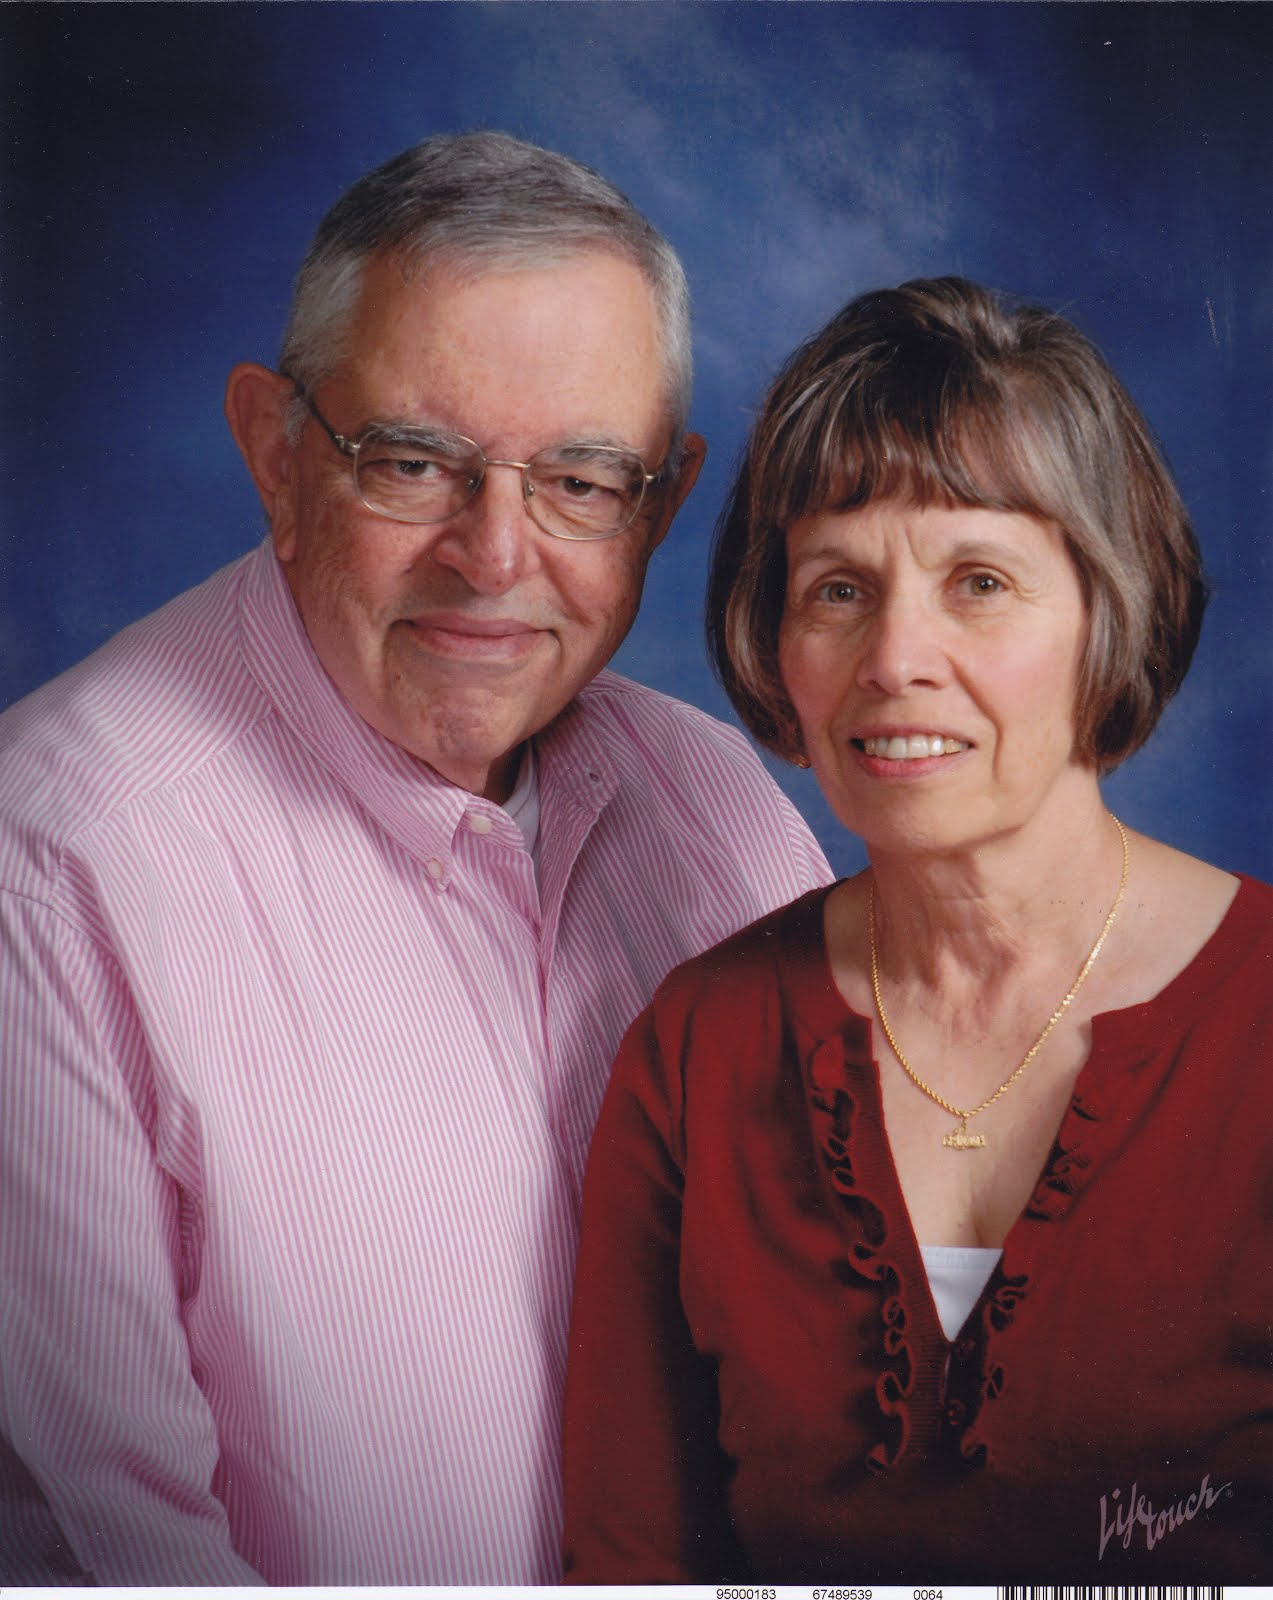 Peter and Gayann Tricarico Barbella